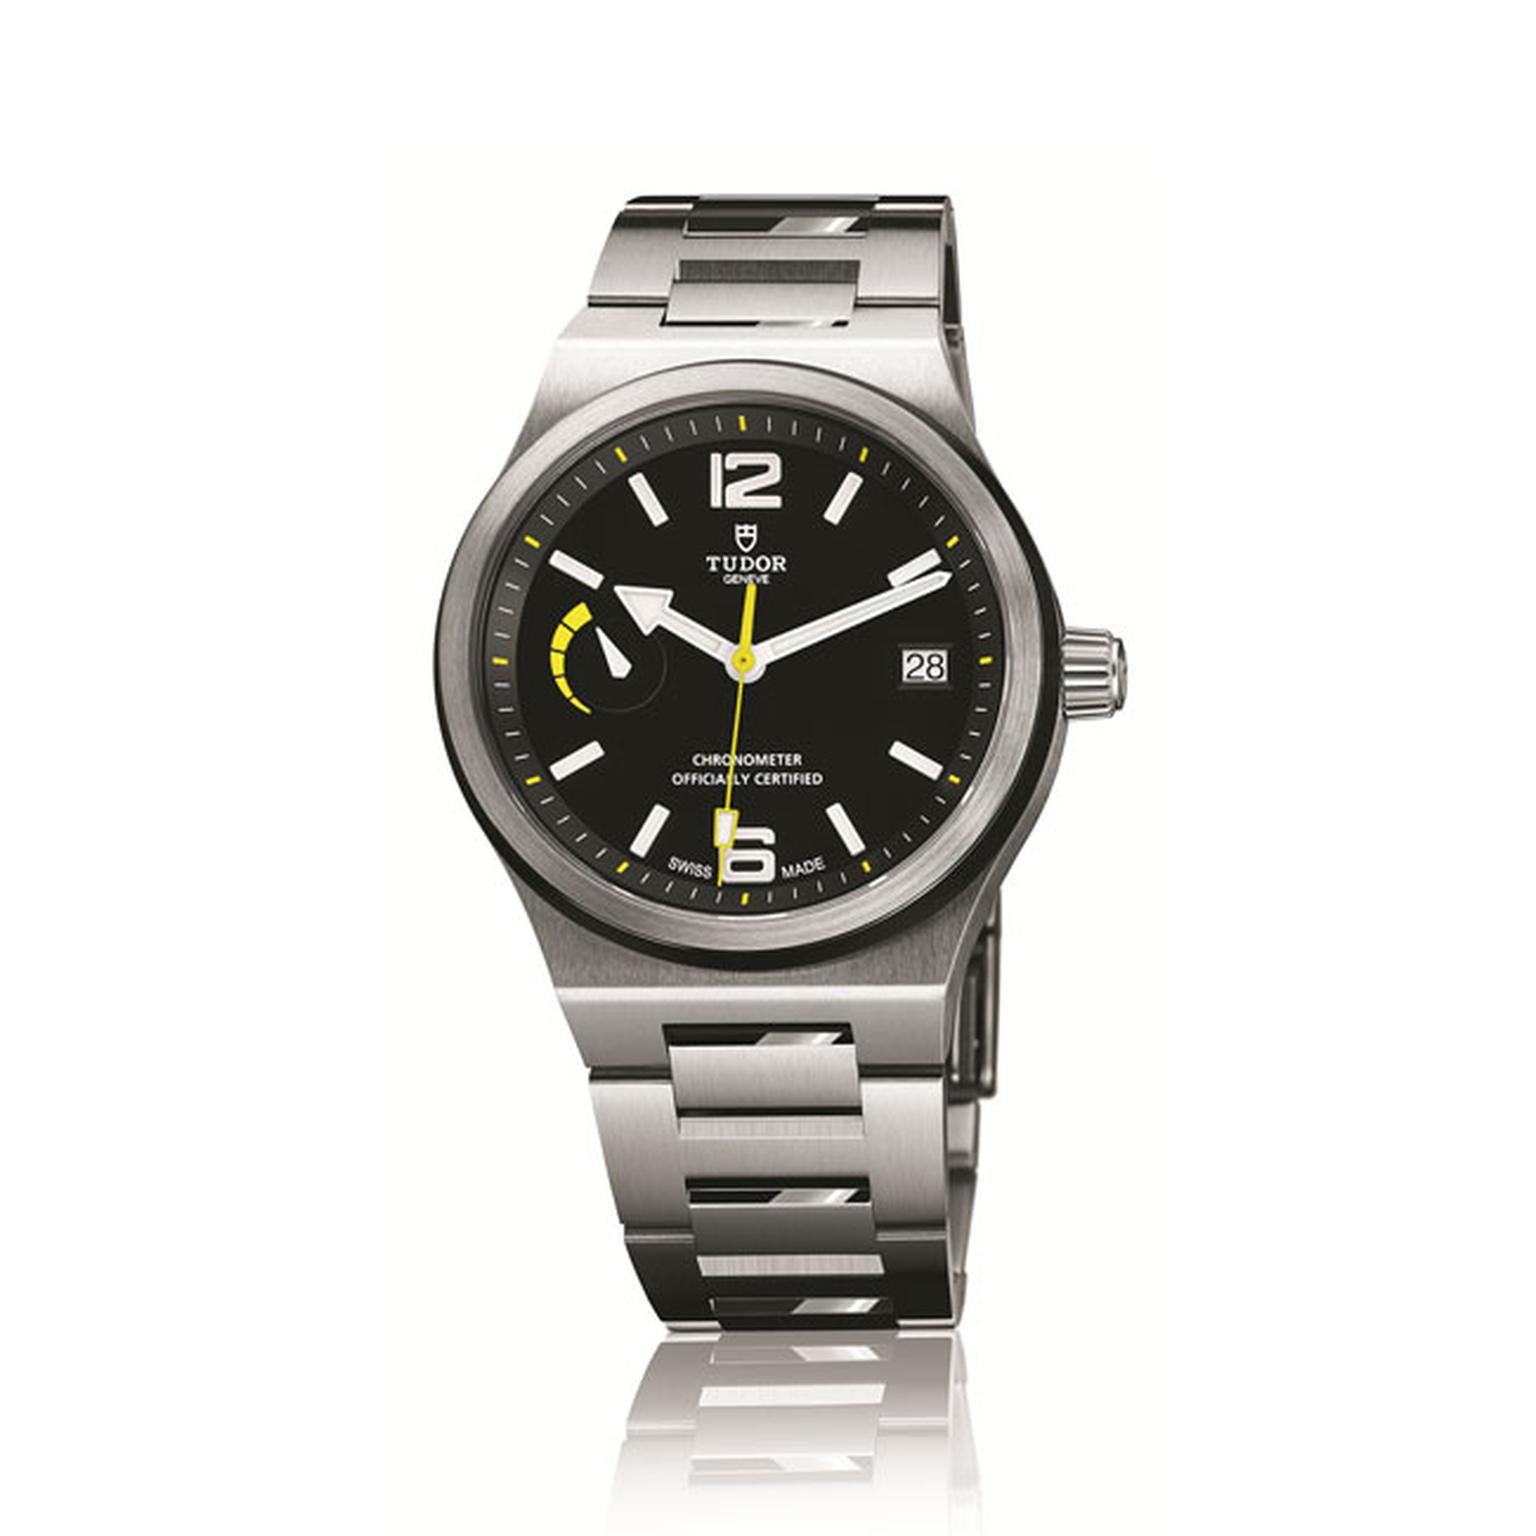 Tudor North Flag mens watch with solid steel bracelet_main